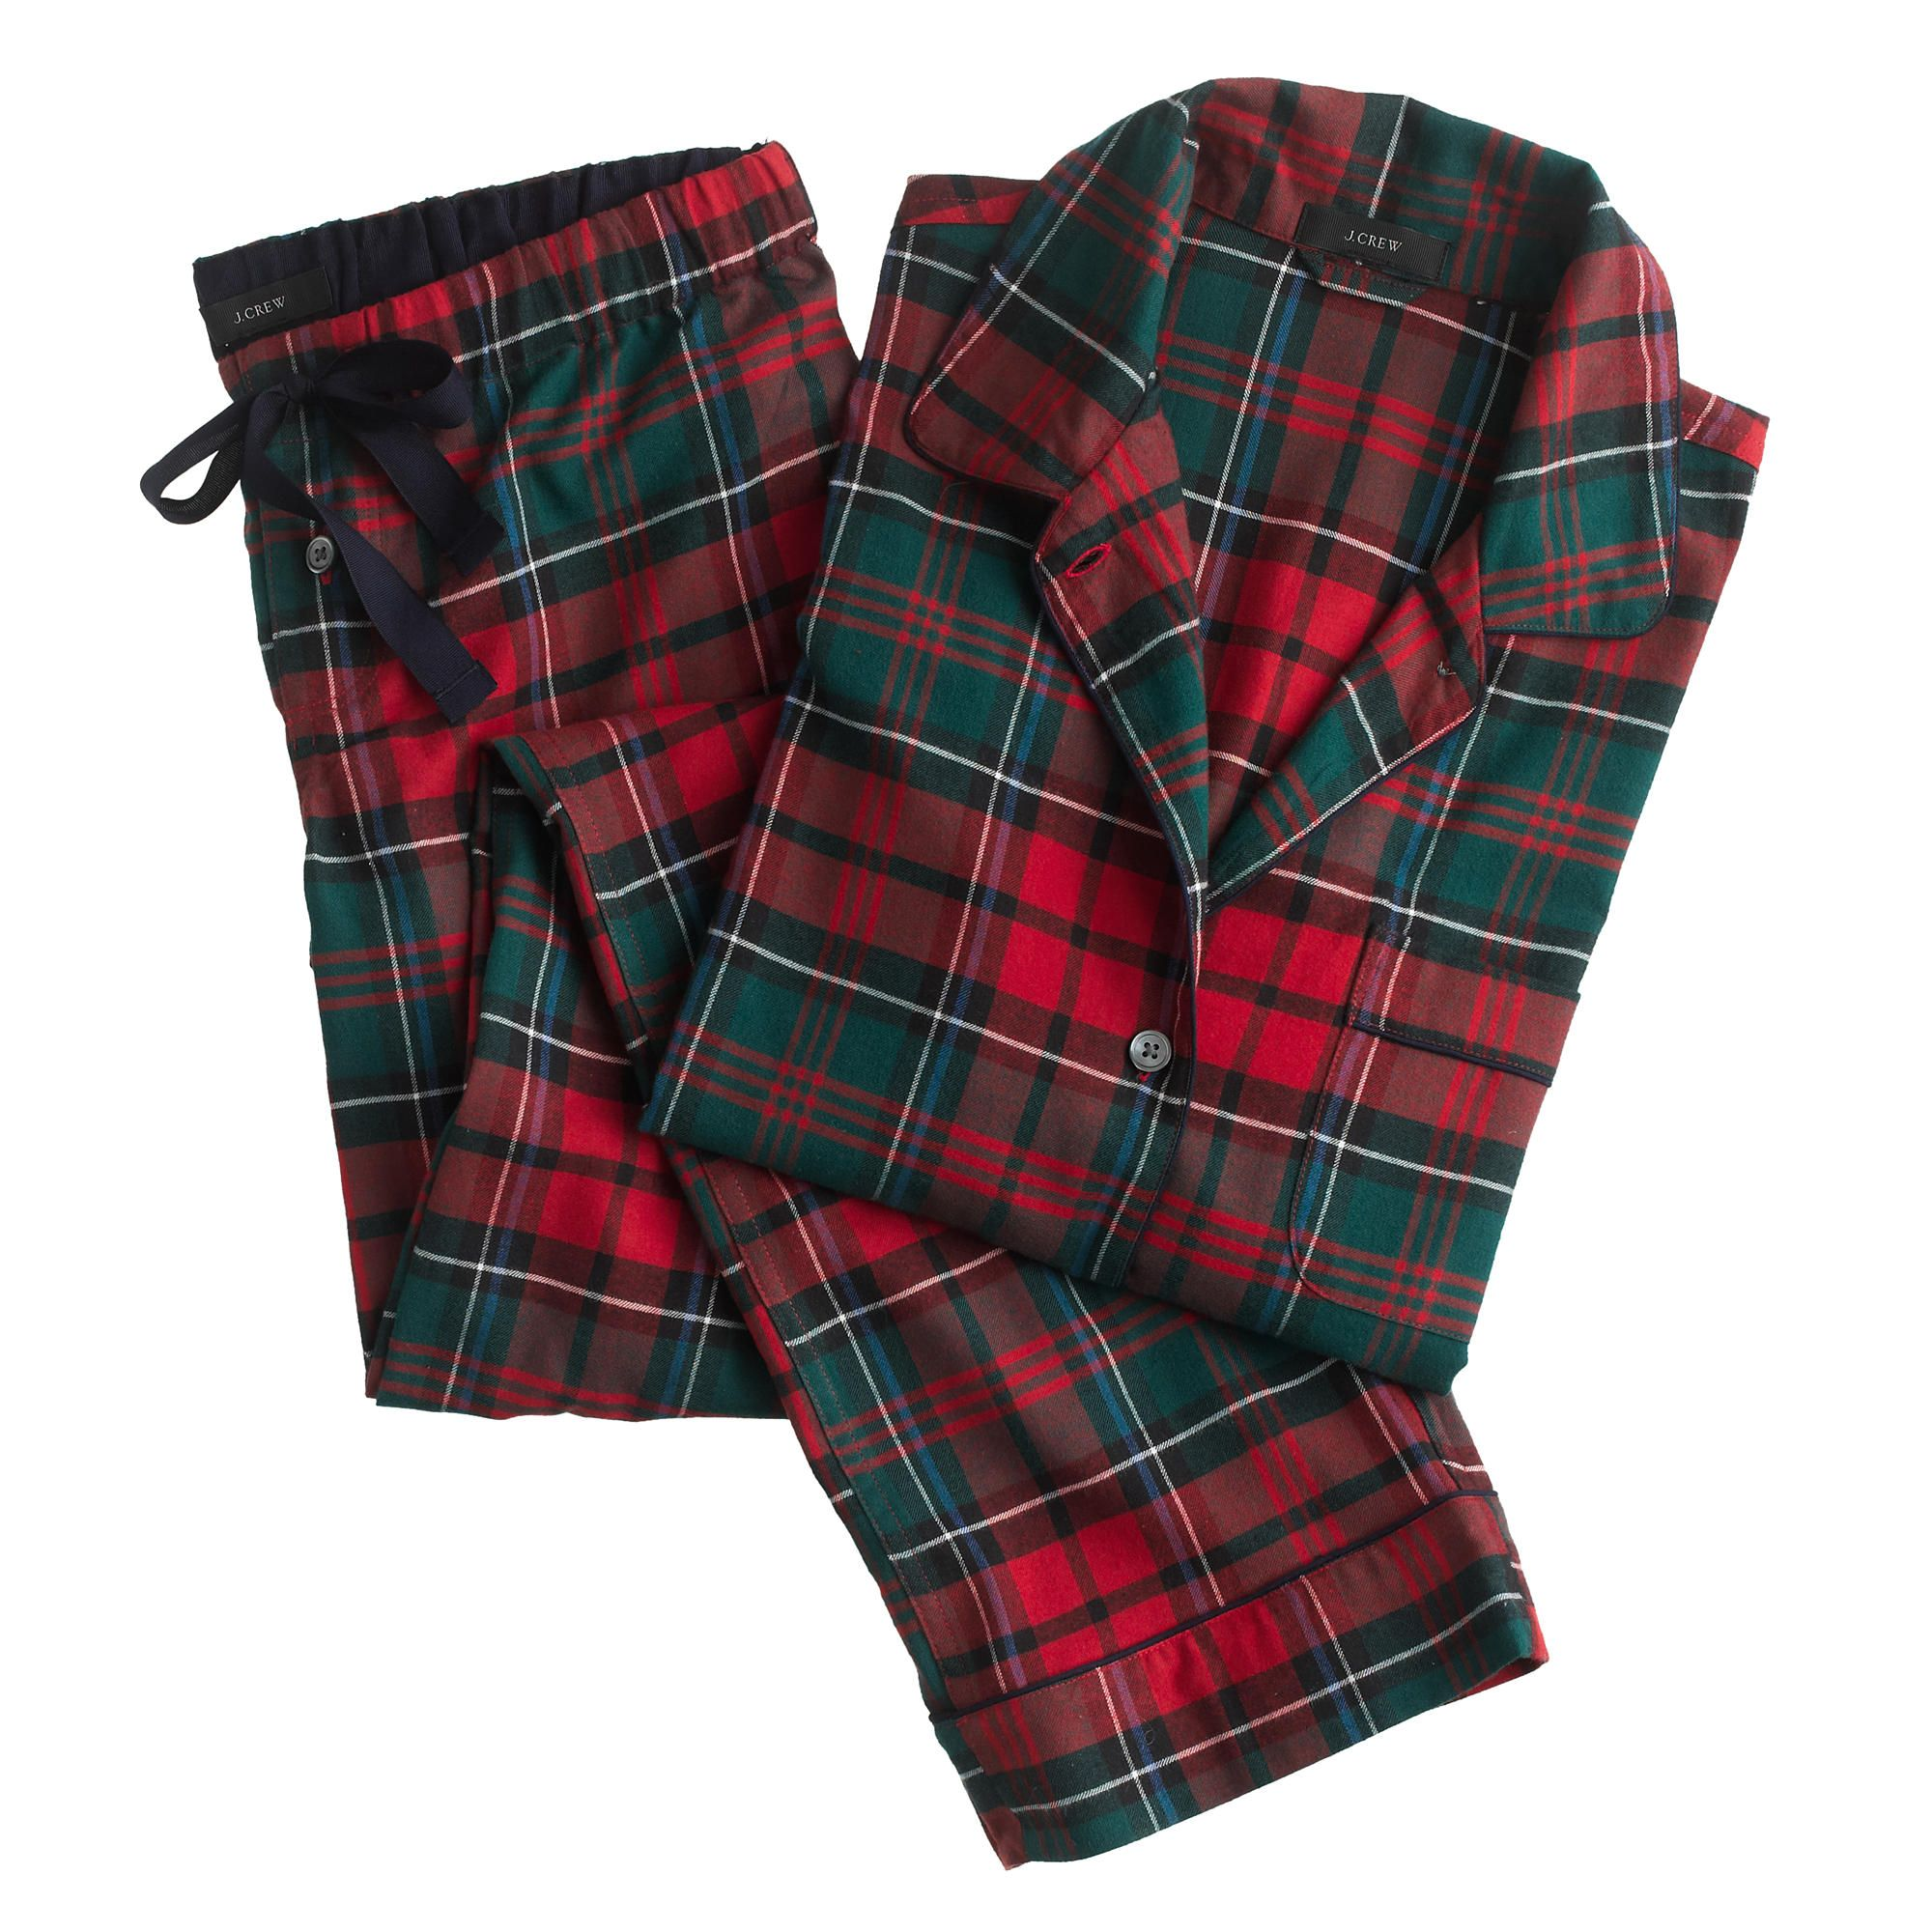 Plaid Pajama Ser // J.Crew | Gifts: The Holidays | Pinterest ...